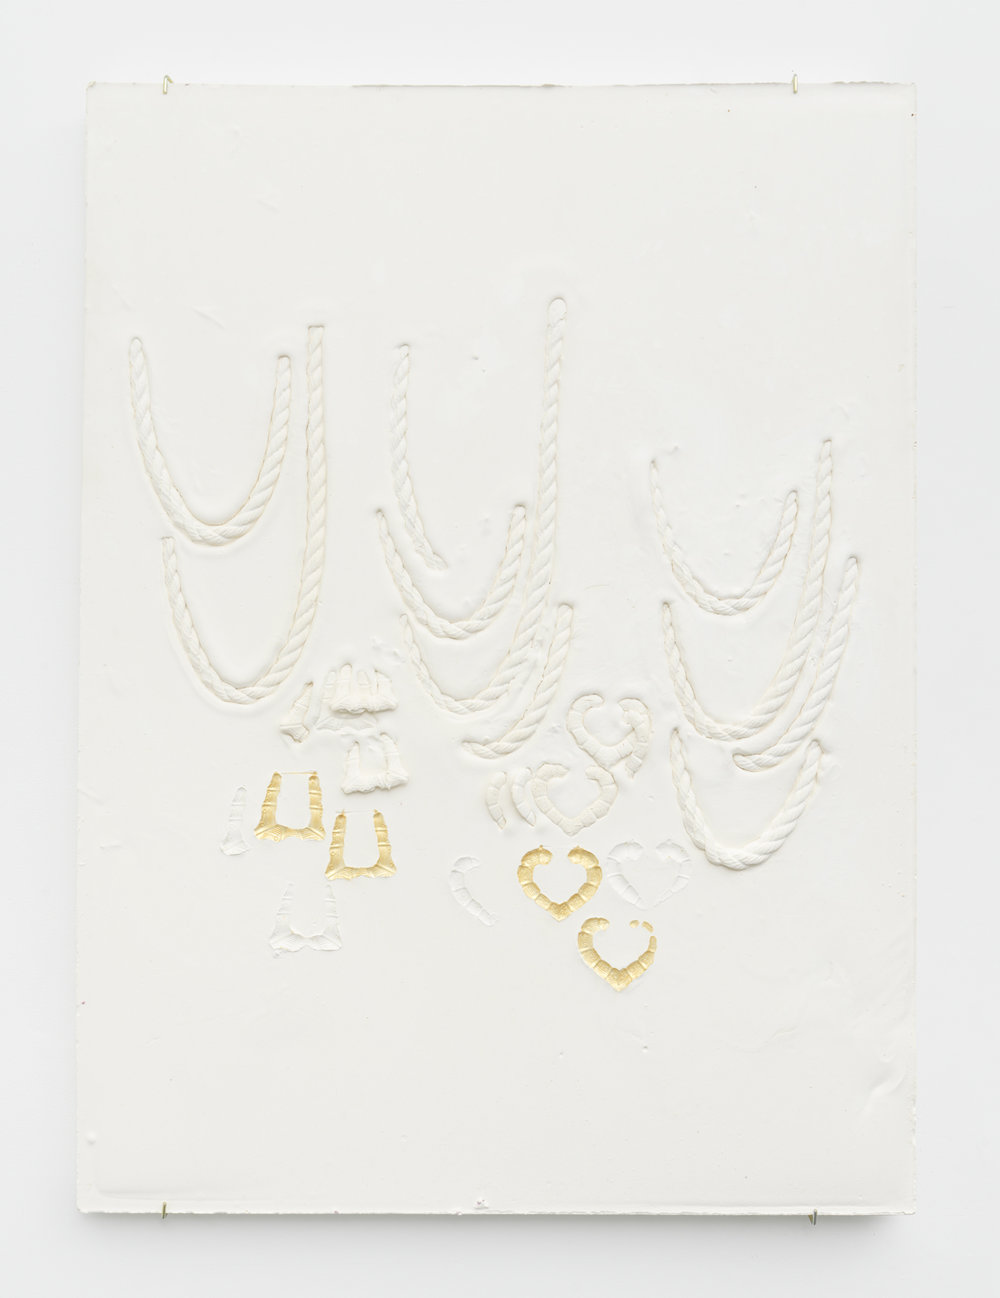 Composition with Rope Chains Overlapping Round Bamboo and Heart Earrings, Impressed with Gold  Plaster, foam and acrylic 46 x 34 x 3 inches, 116.84 x 86.36 x 7.62 cm 2019